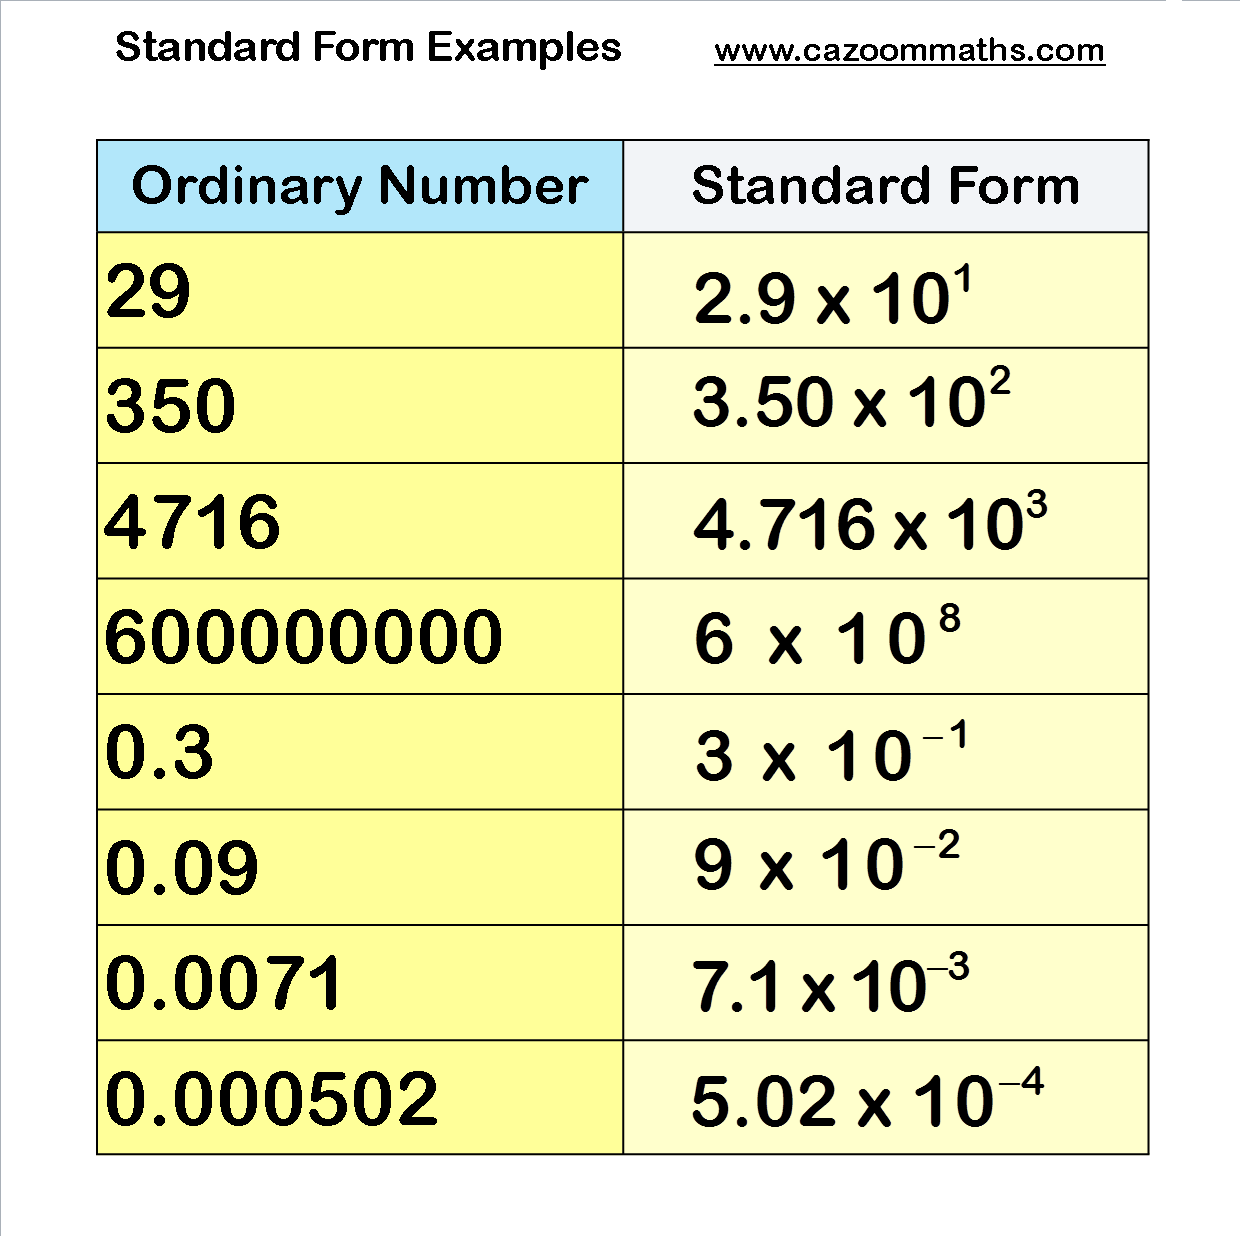 standard form math example  number resources, Math worksheets | Standard form math ...